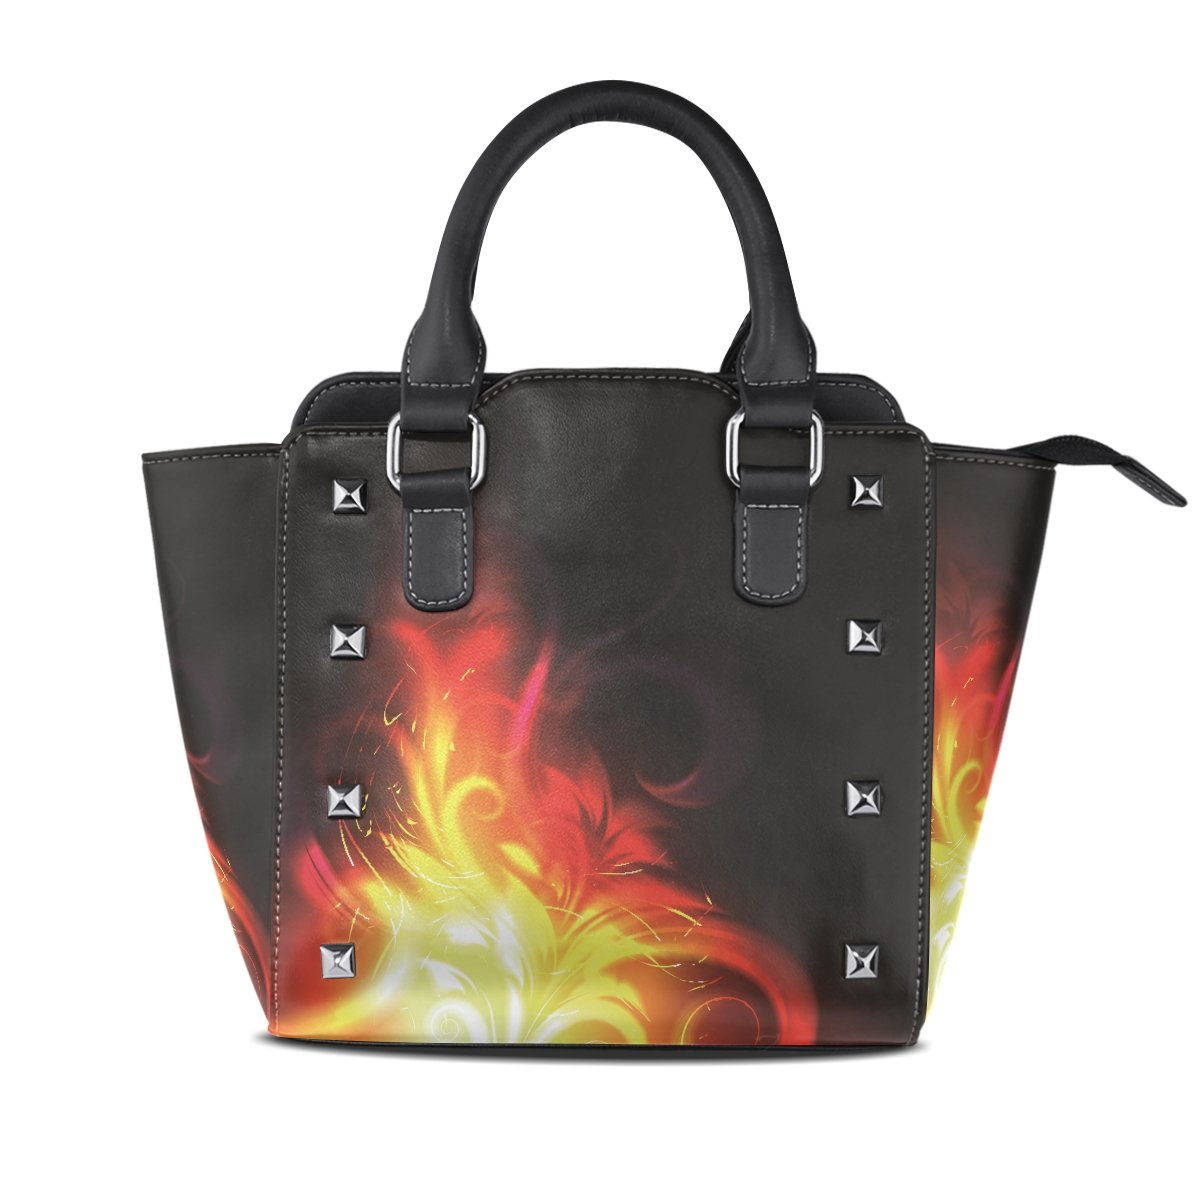 Womens Genuine Leather Hangbags Tote Bags Flame Purse Shoulder Bags